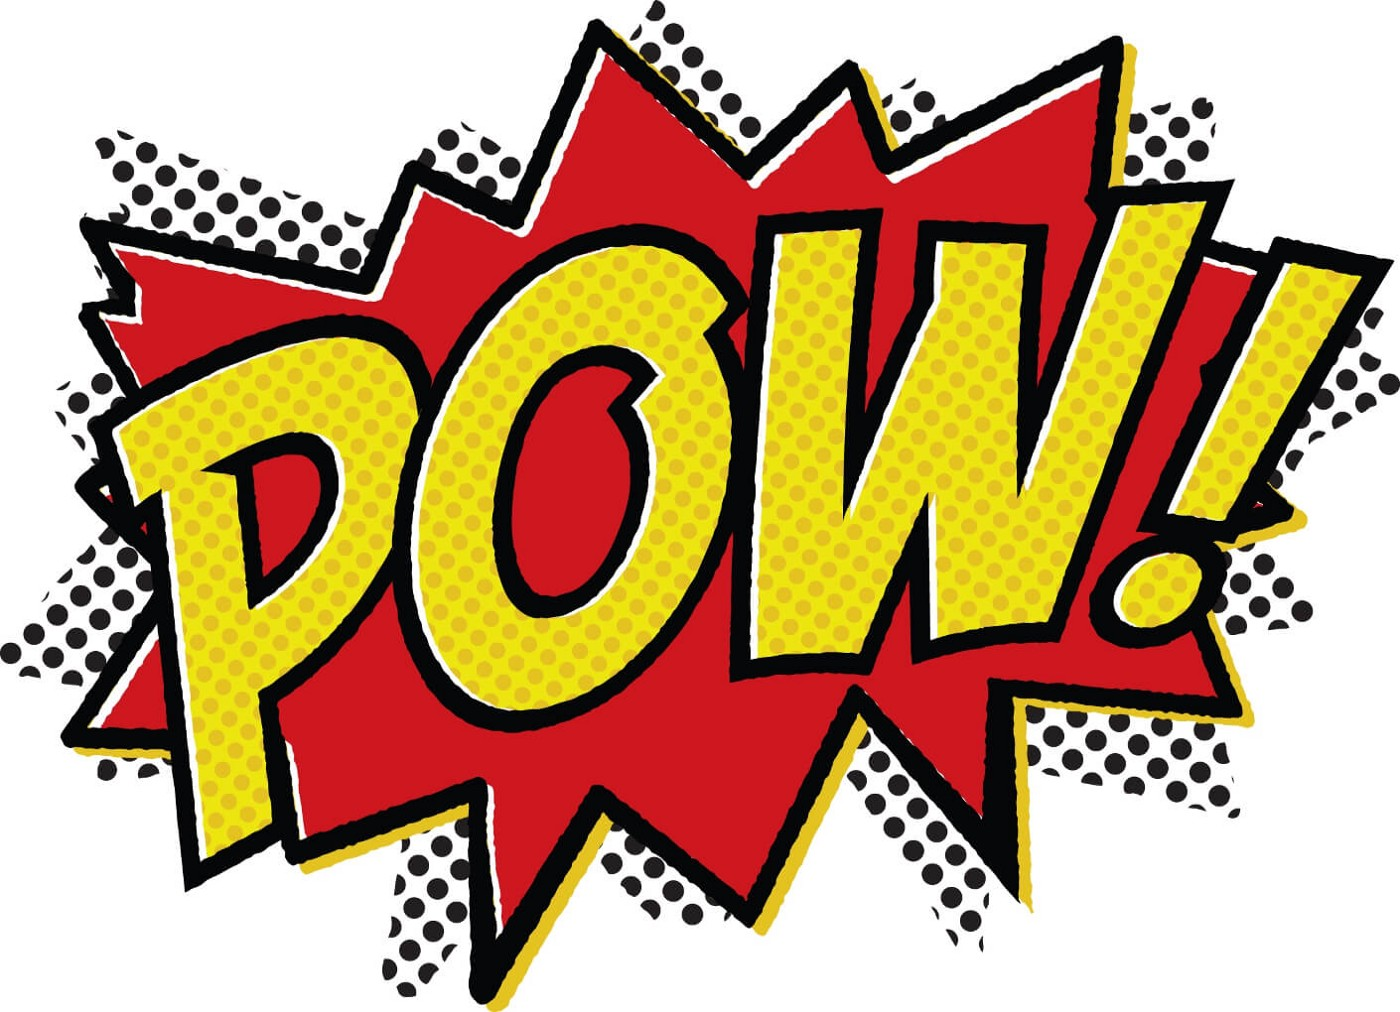 The word POW depicted as a cartoon.